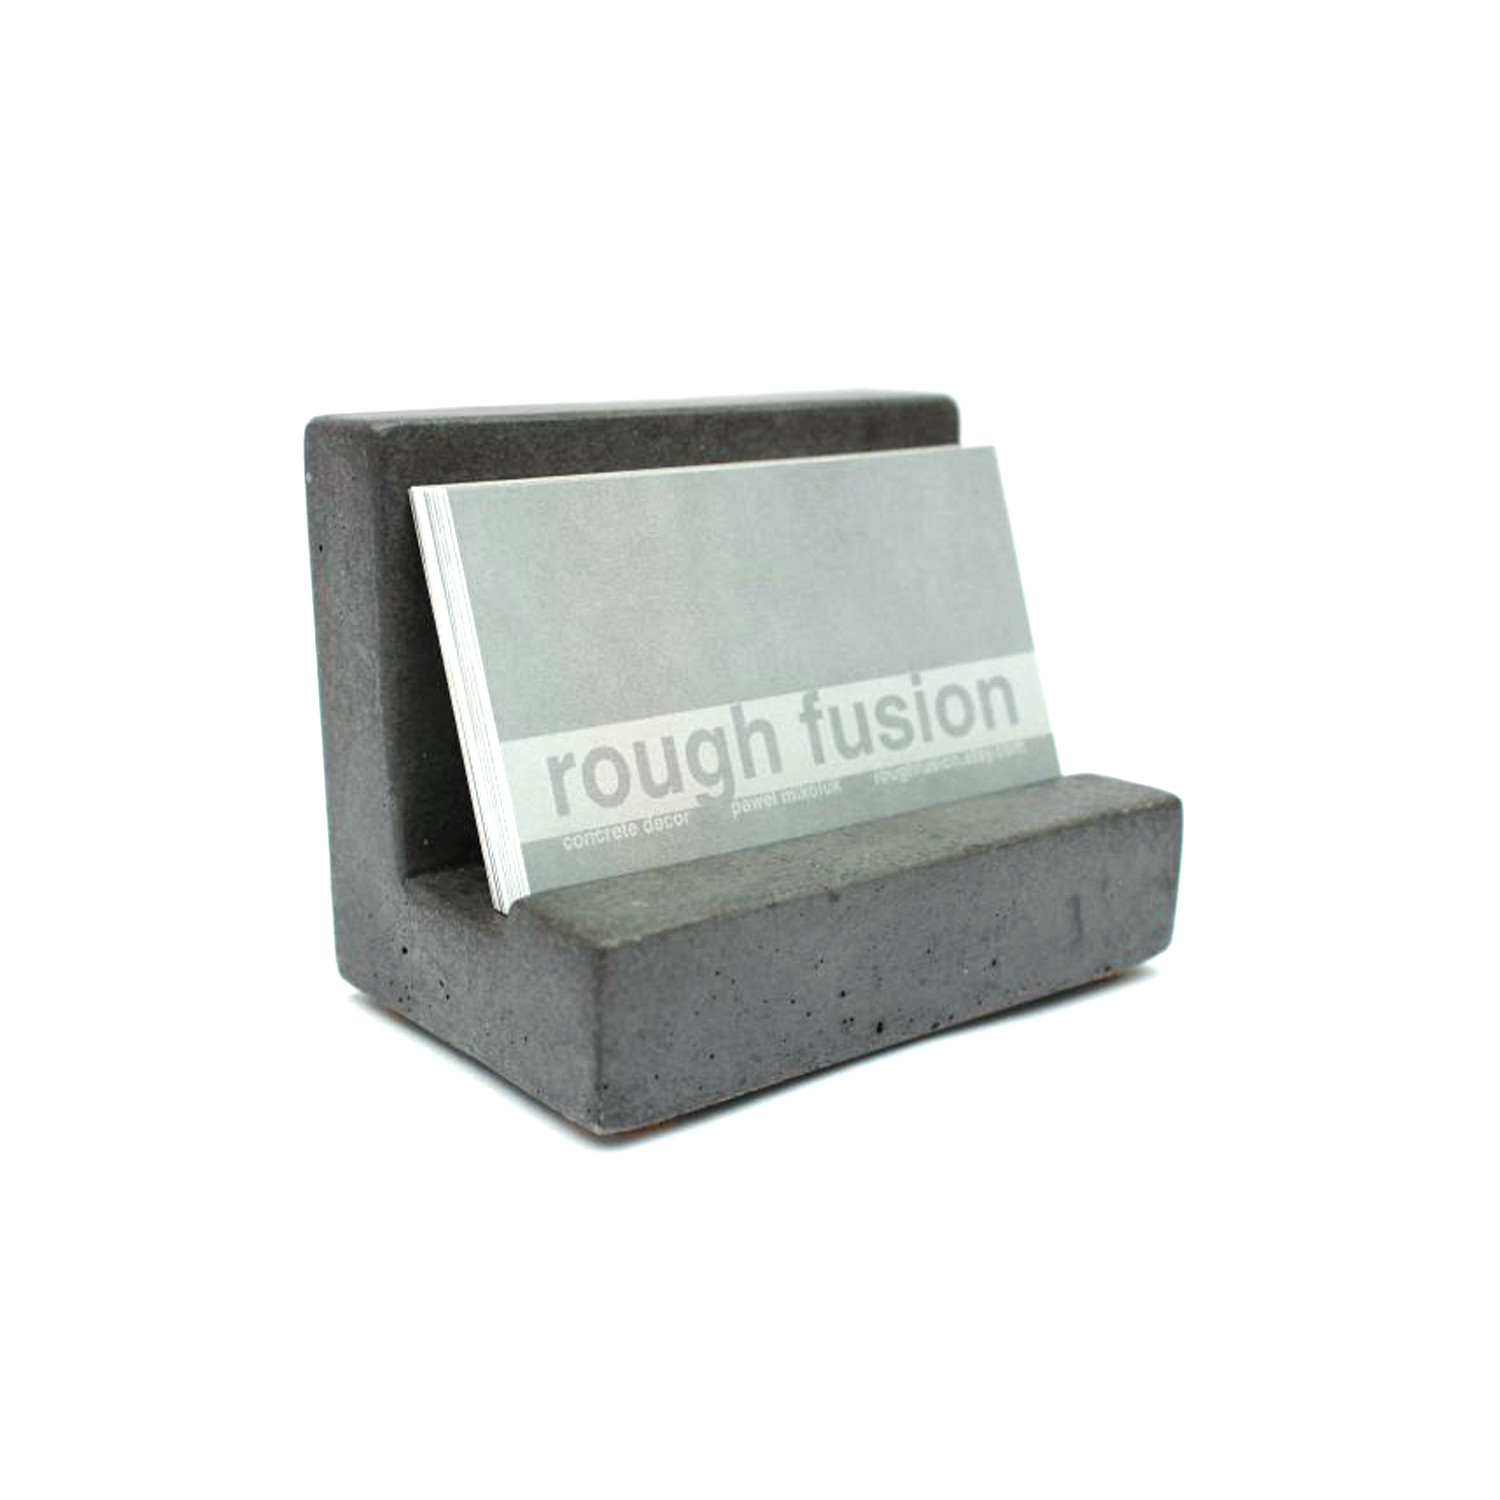 Concrete business card holder natural rough fusion touch of modern concrete business card holder natural colourmoves